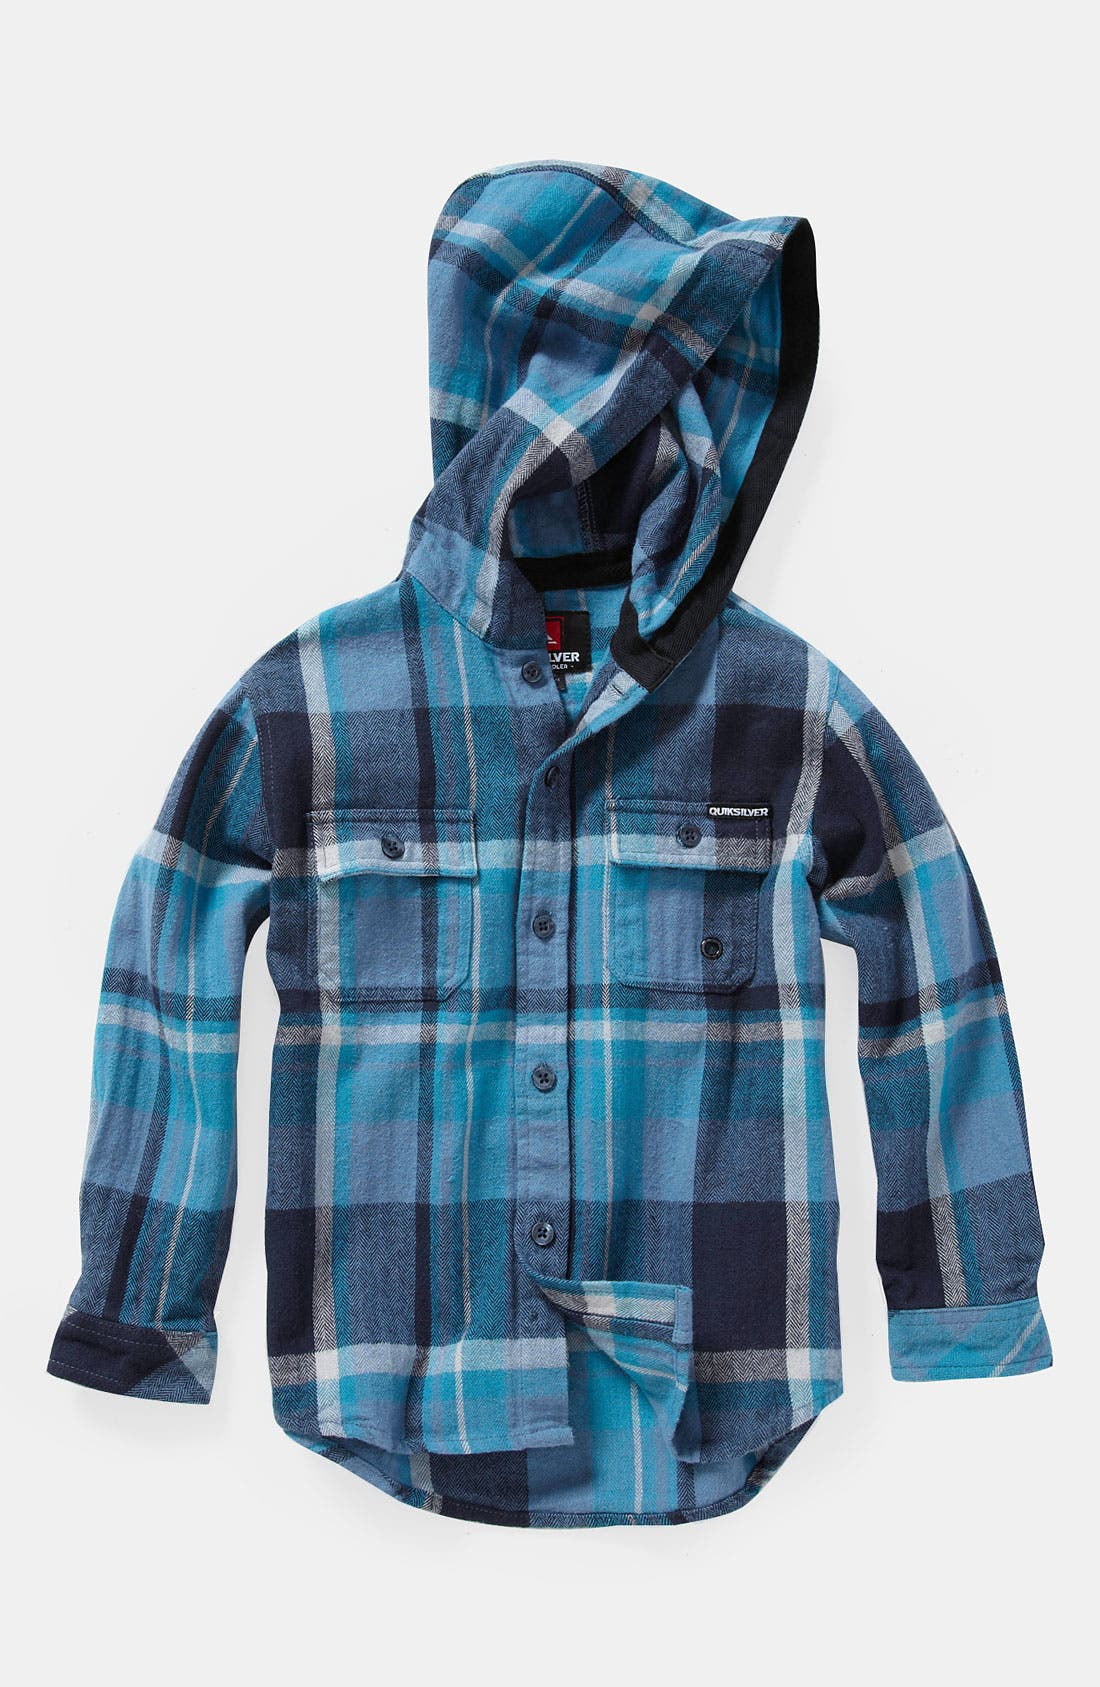 Main Image - Quiksilver 'Four Short' Hooded Flannel Shirt (Toddler)